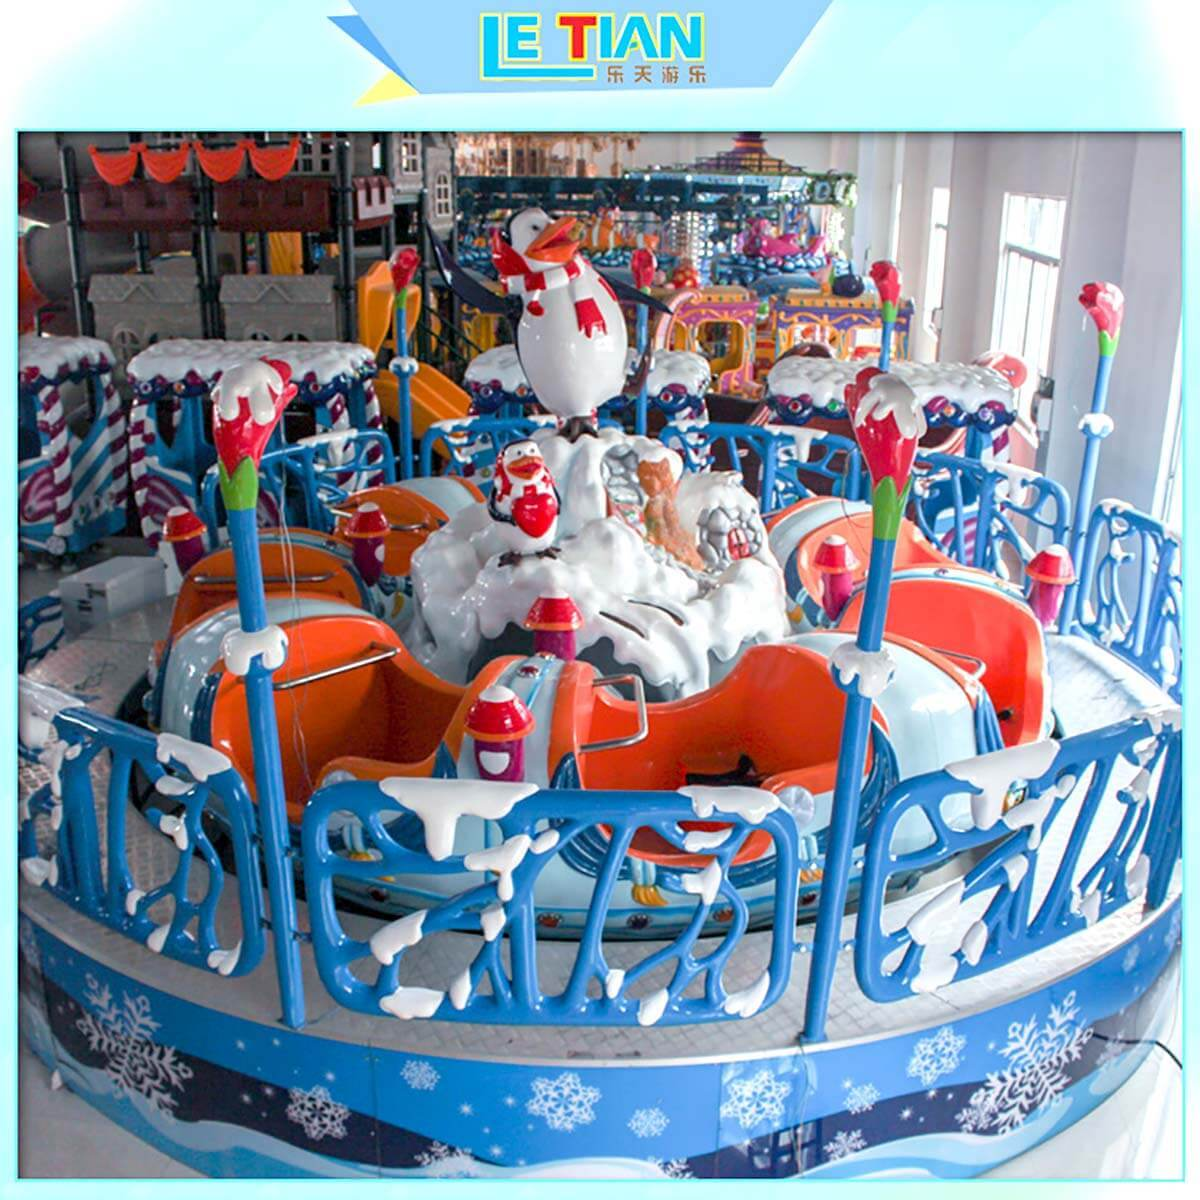 LETIAN jumping spinning teacups factory playground-2